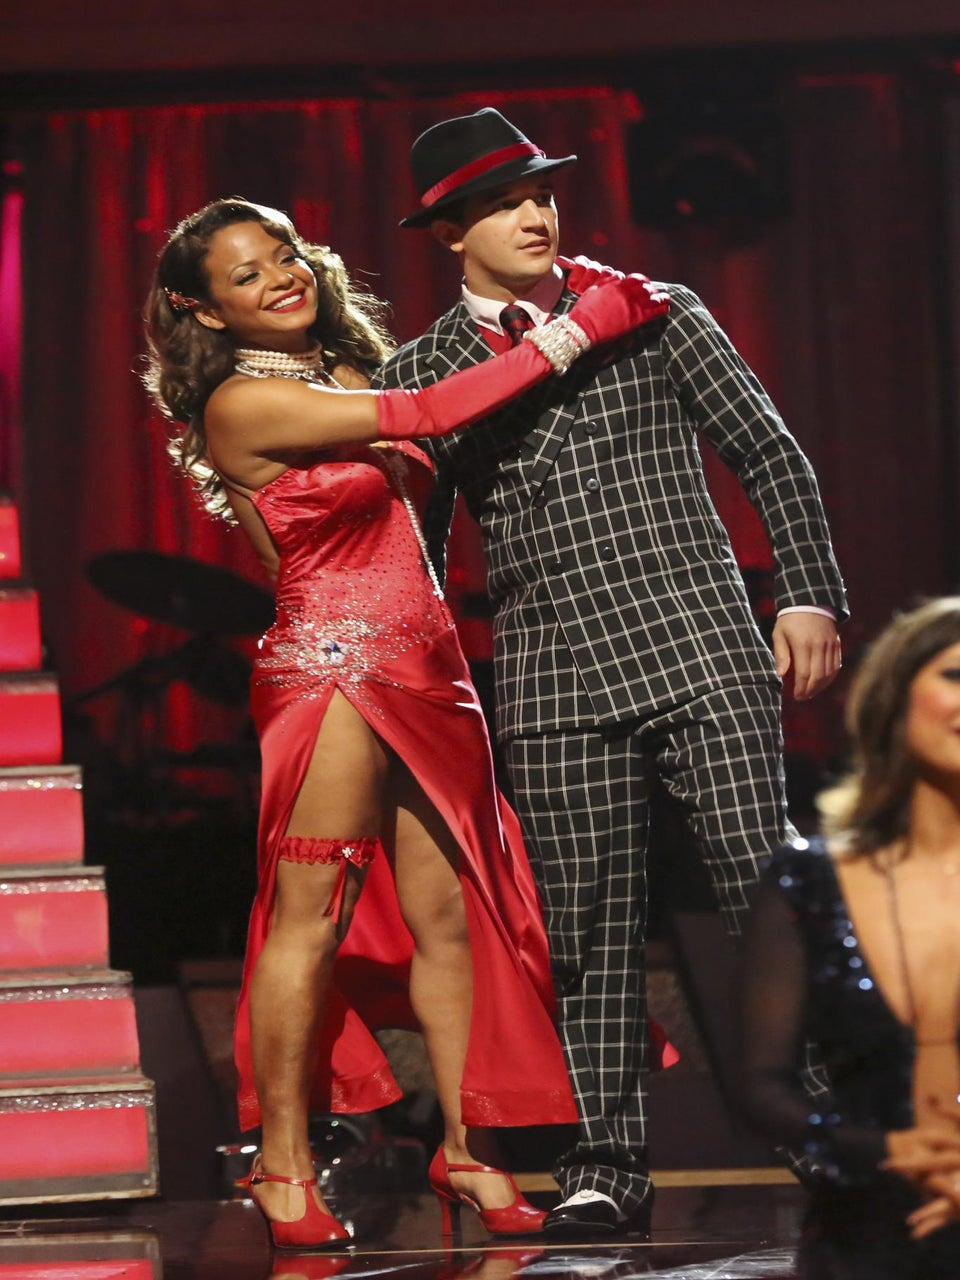 Coffee Talk: Christina Milian Eliminated from 'Dancing with the Stars'